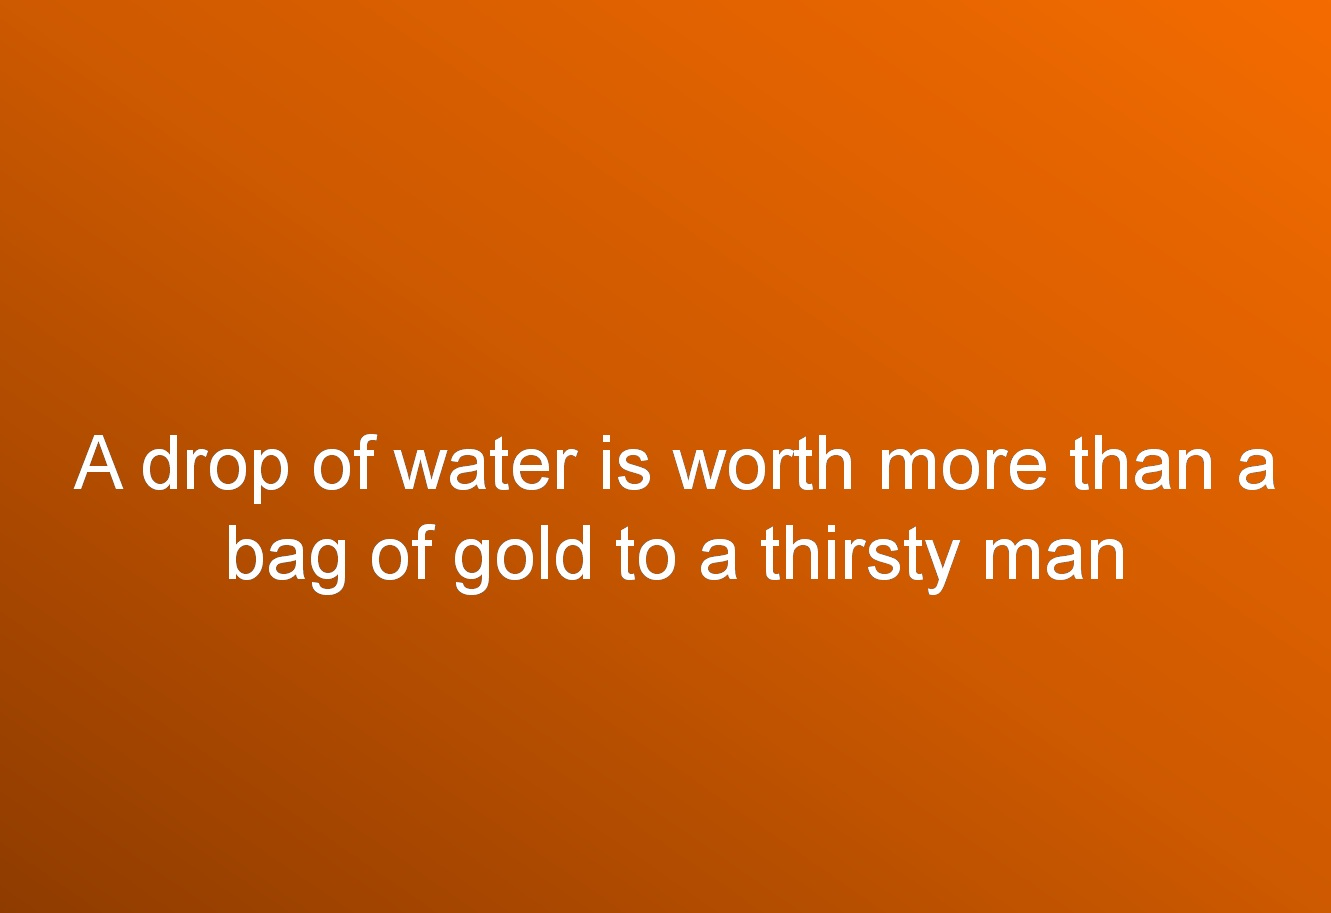 A drop of water is worth more than a bag of gold to a thirsty man